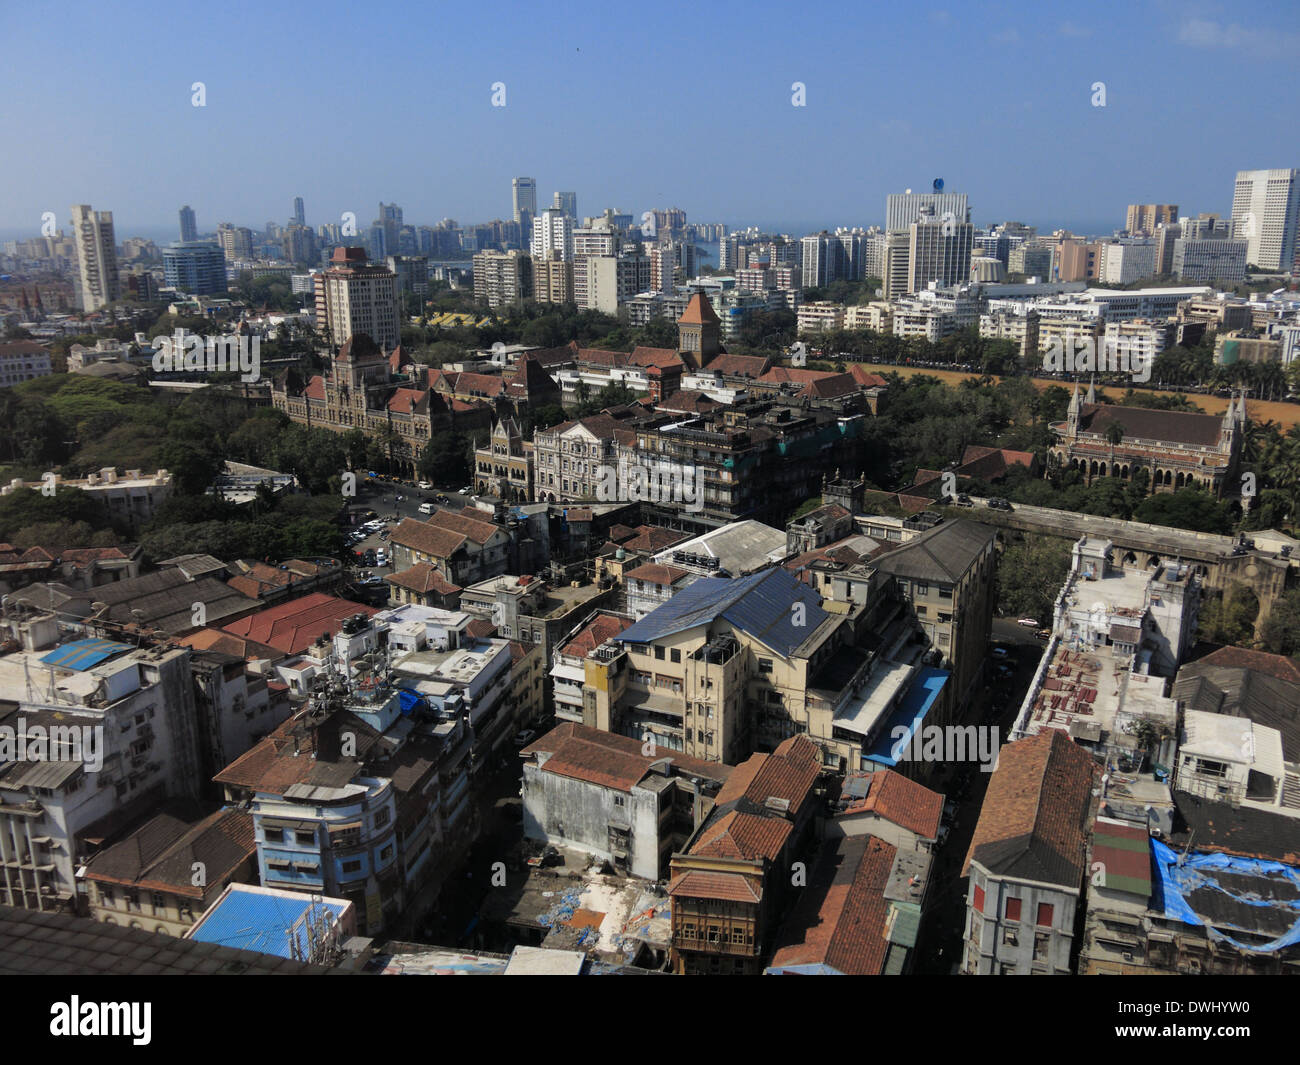 Mumbai skyline, daytime, February 27, 2014 - Stock Image